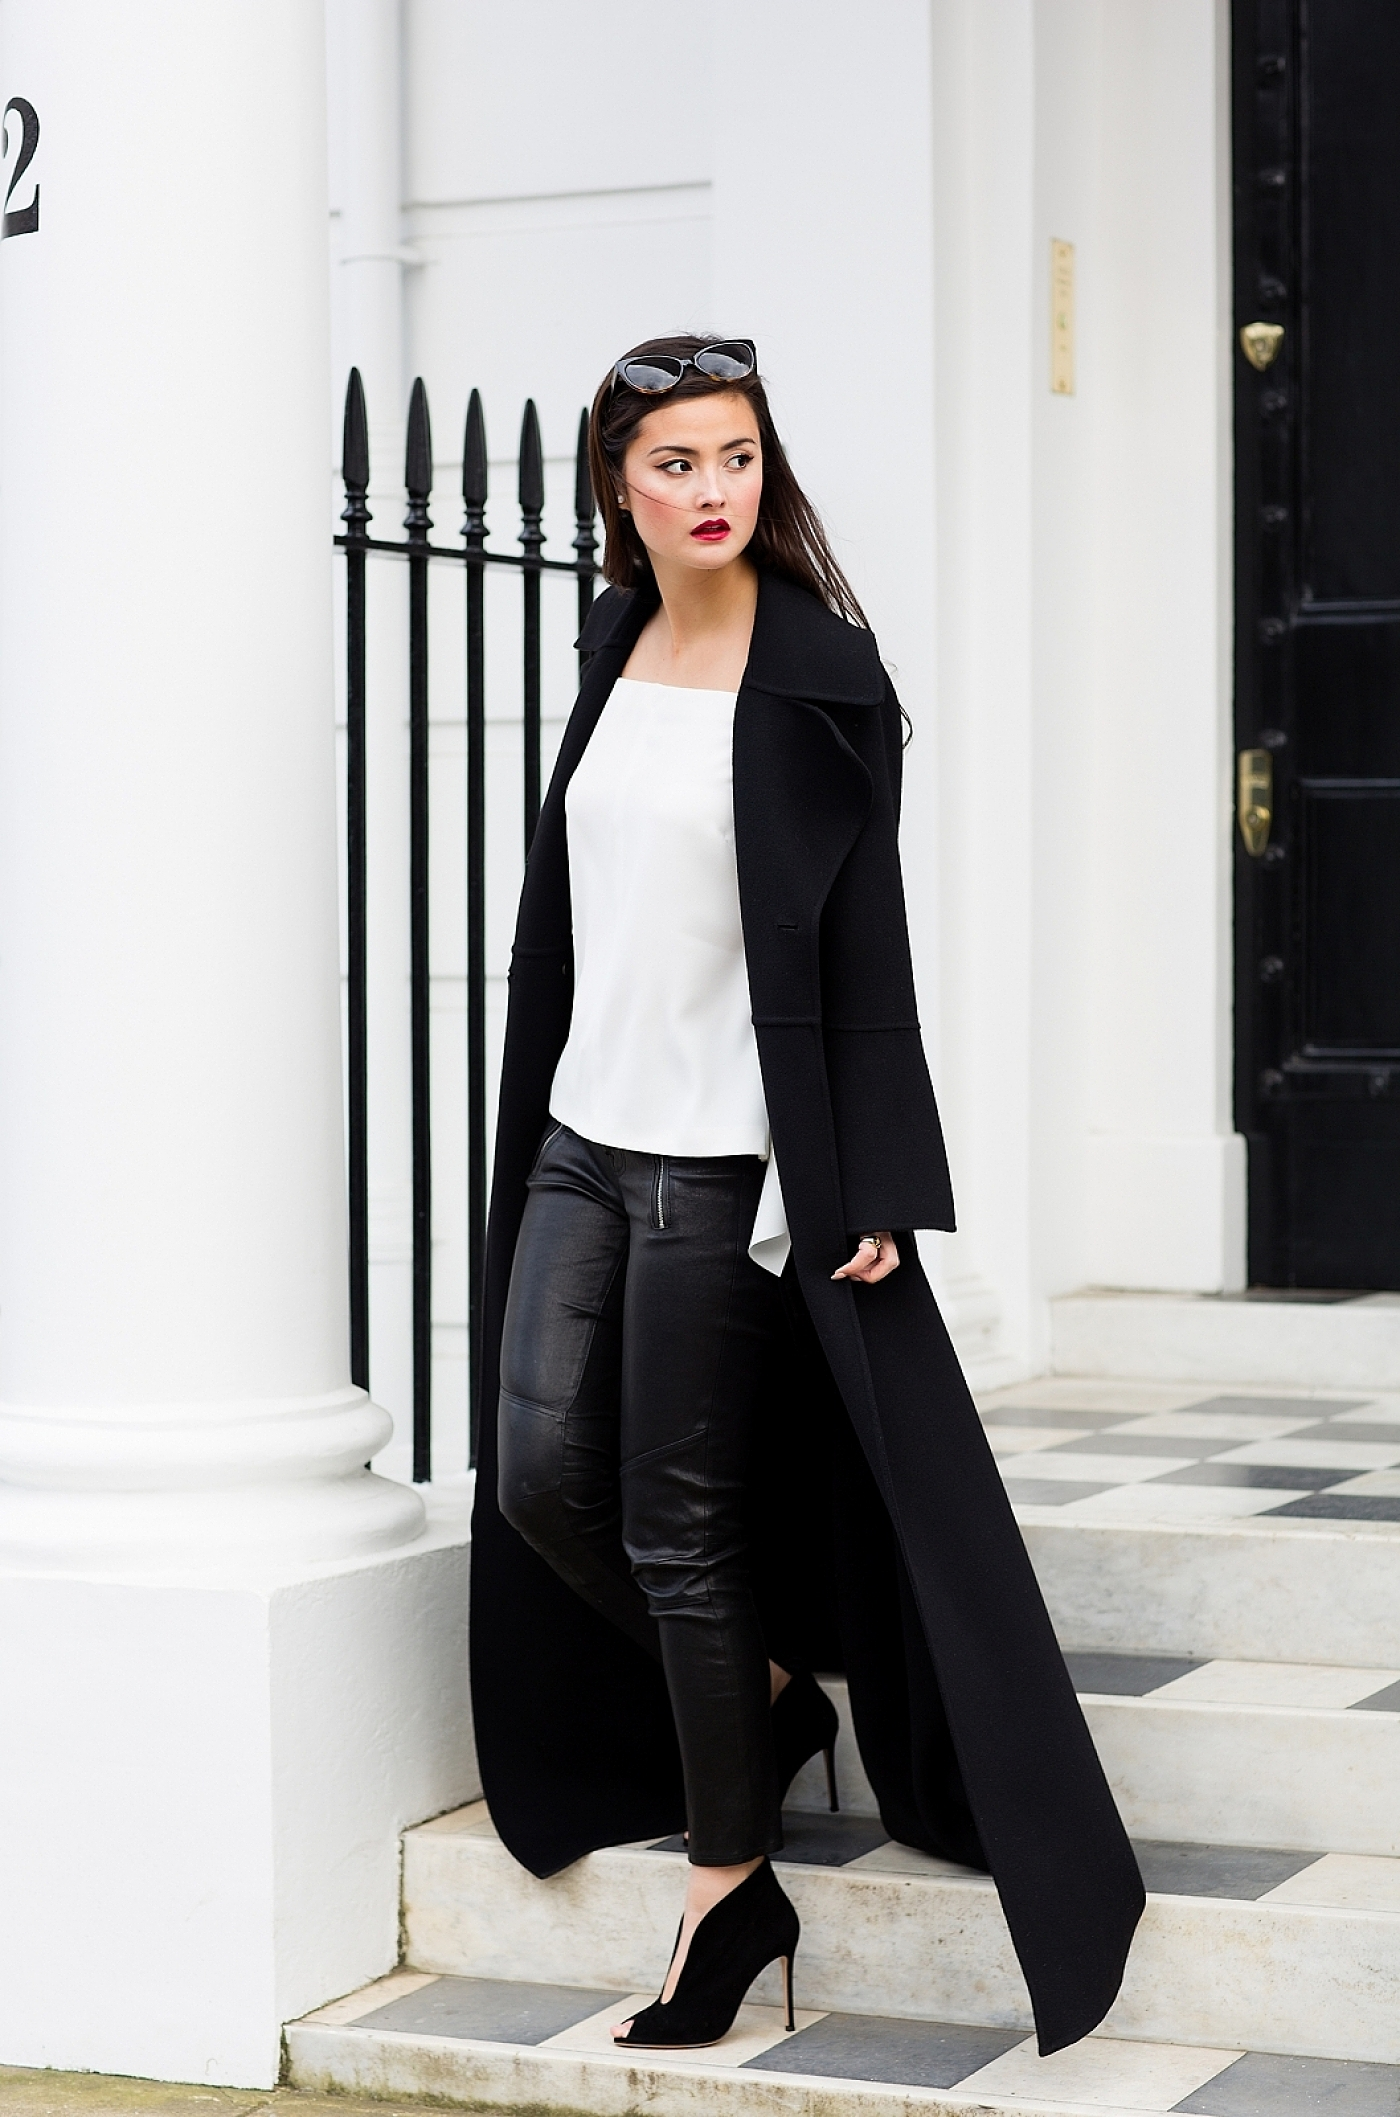 Peony Lim wears the maxi coat trend with leather leggings and a gorgeously simplistic white top to create an elegant and smart overall look. Worn with heels, this look is also ultra glamorous. Coat: Celine, Top: Pinko, Trousers: J. Brand, Shoes: Gianvito Rossi, Bag: Charles and Keith.